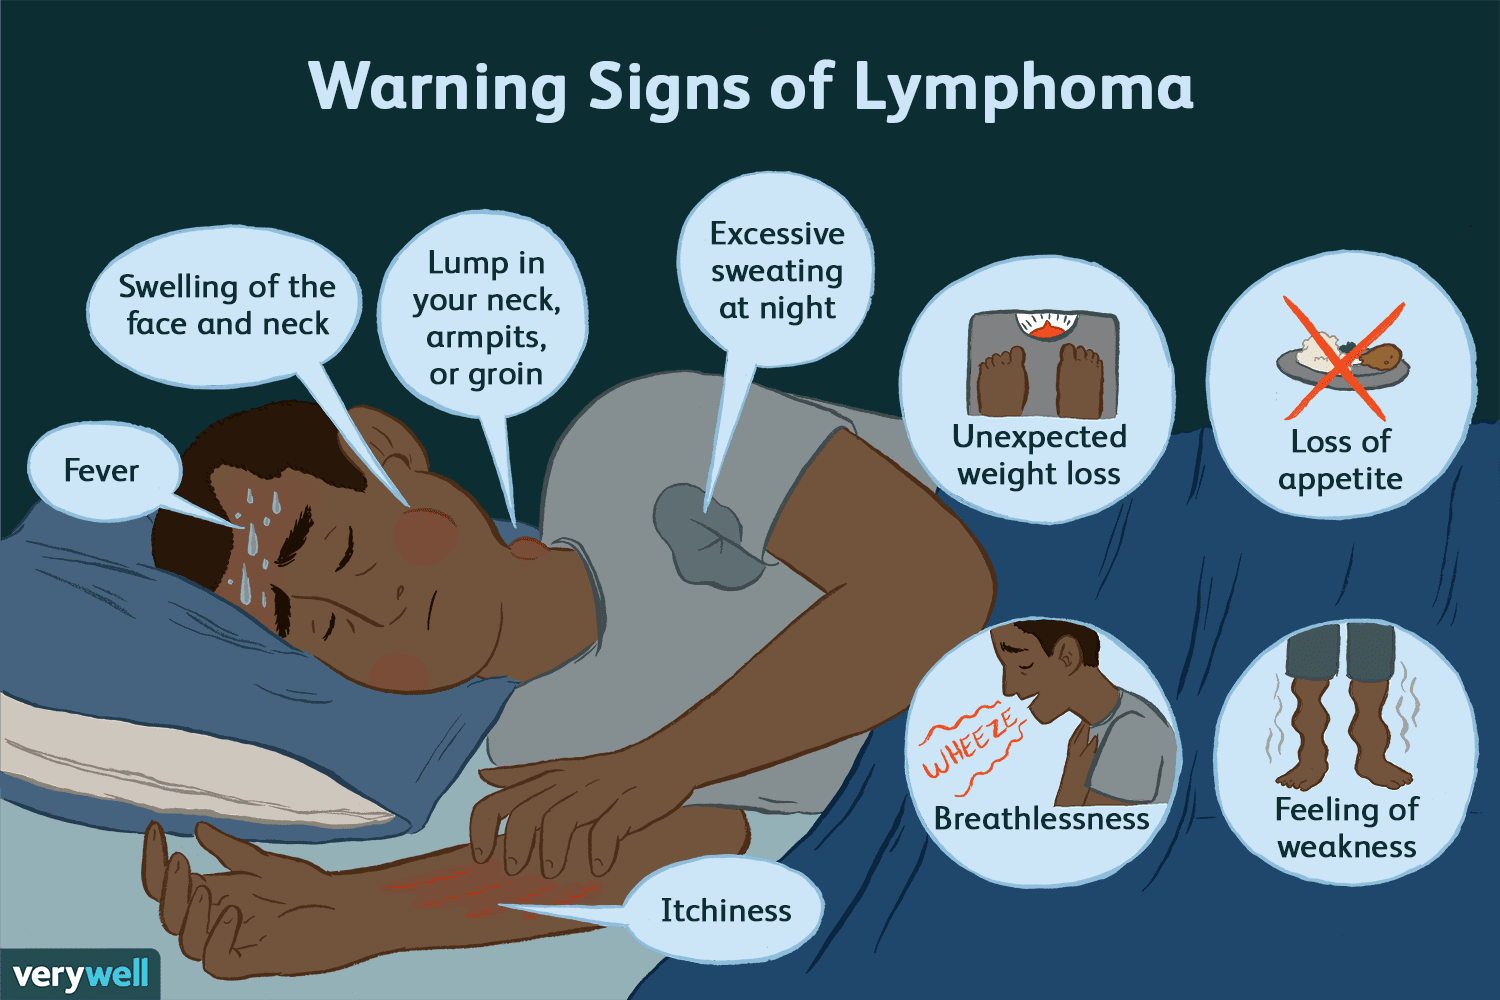 could these be warning signs of lymphoma